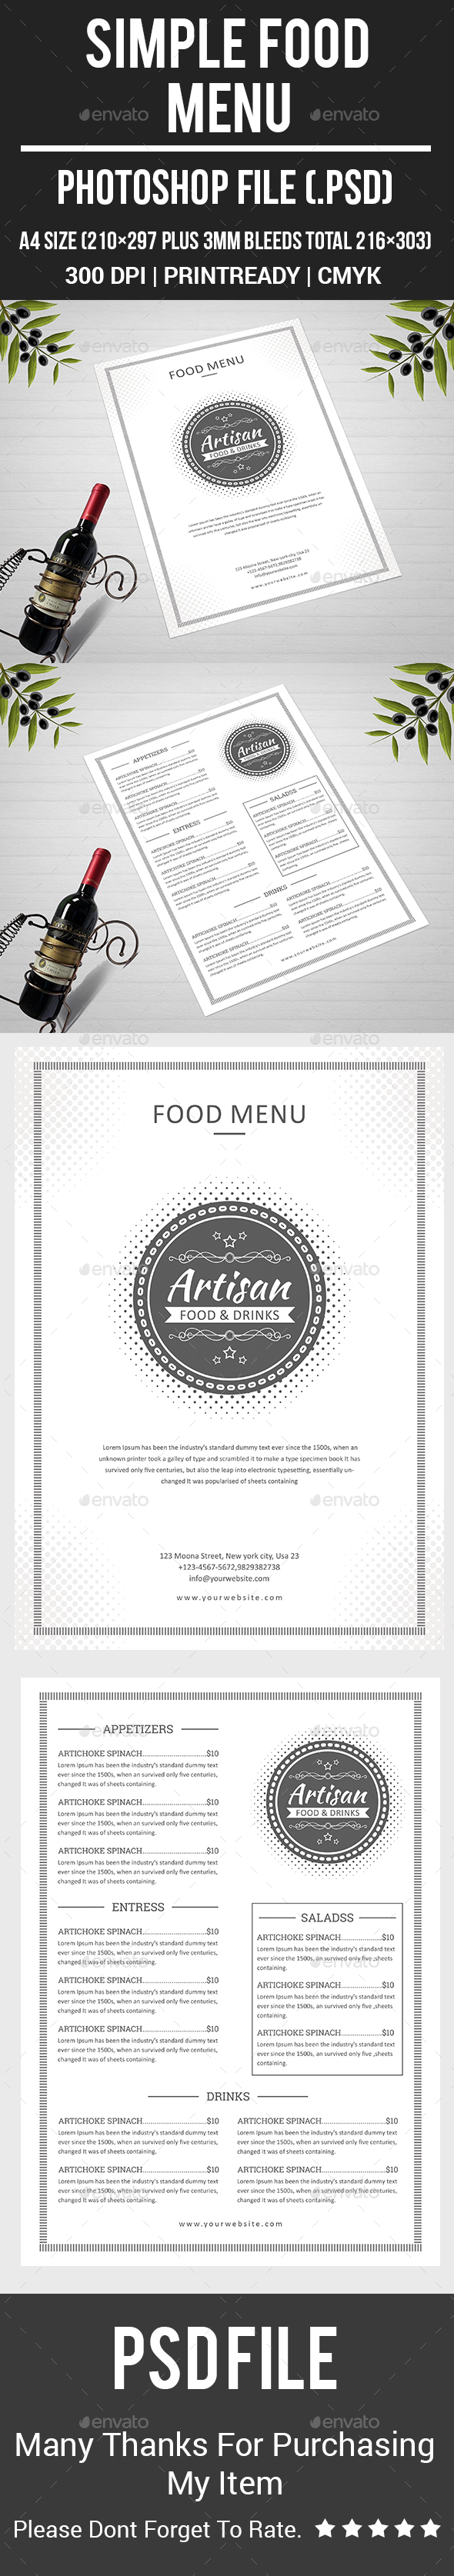 Simple Food Menu - Food Menus Print Templates